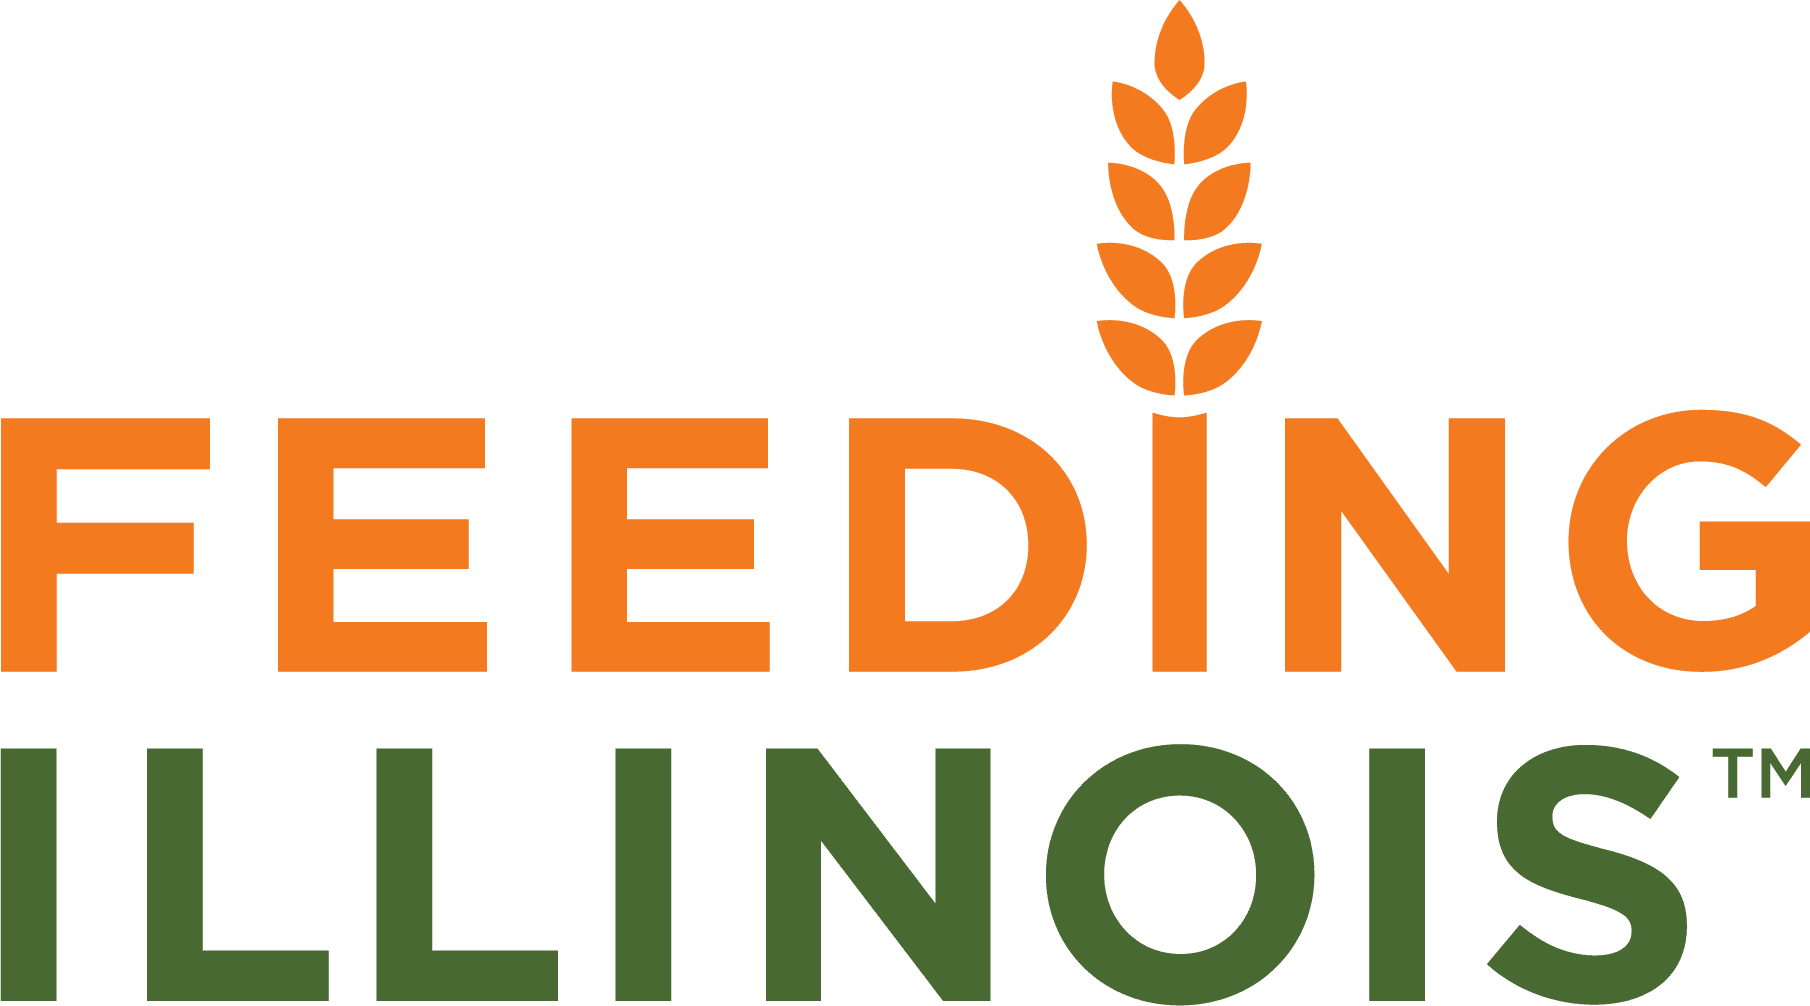 Feeding Illinois